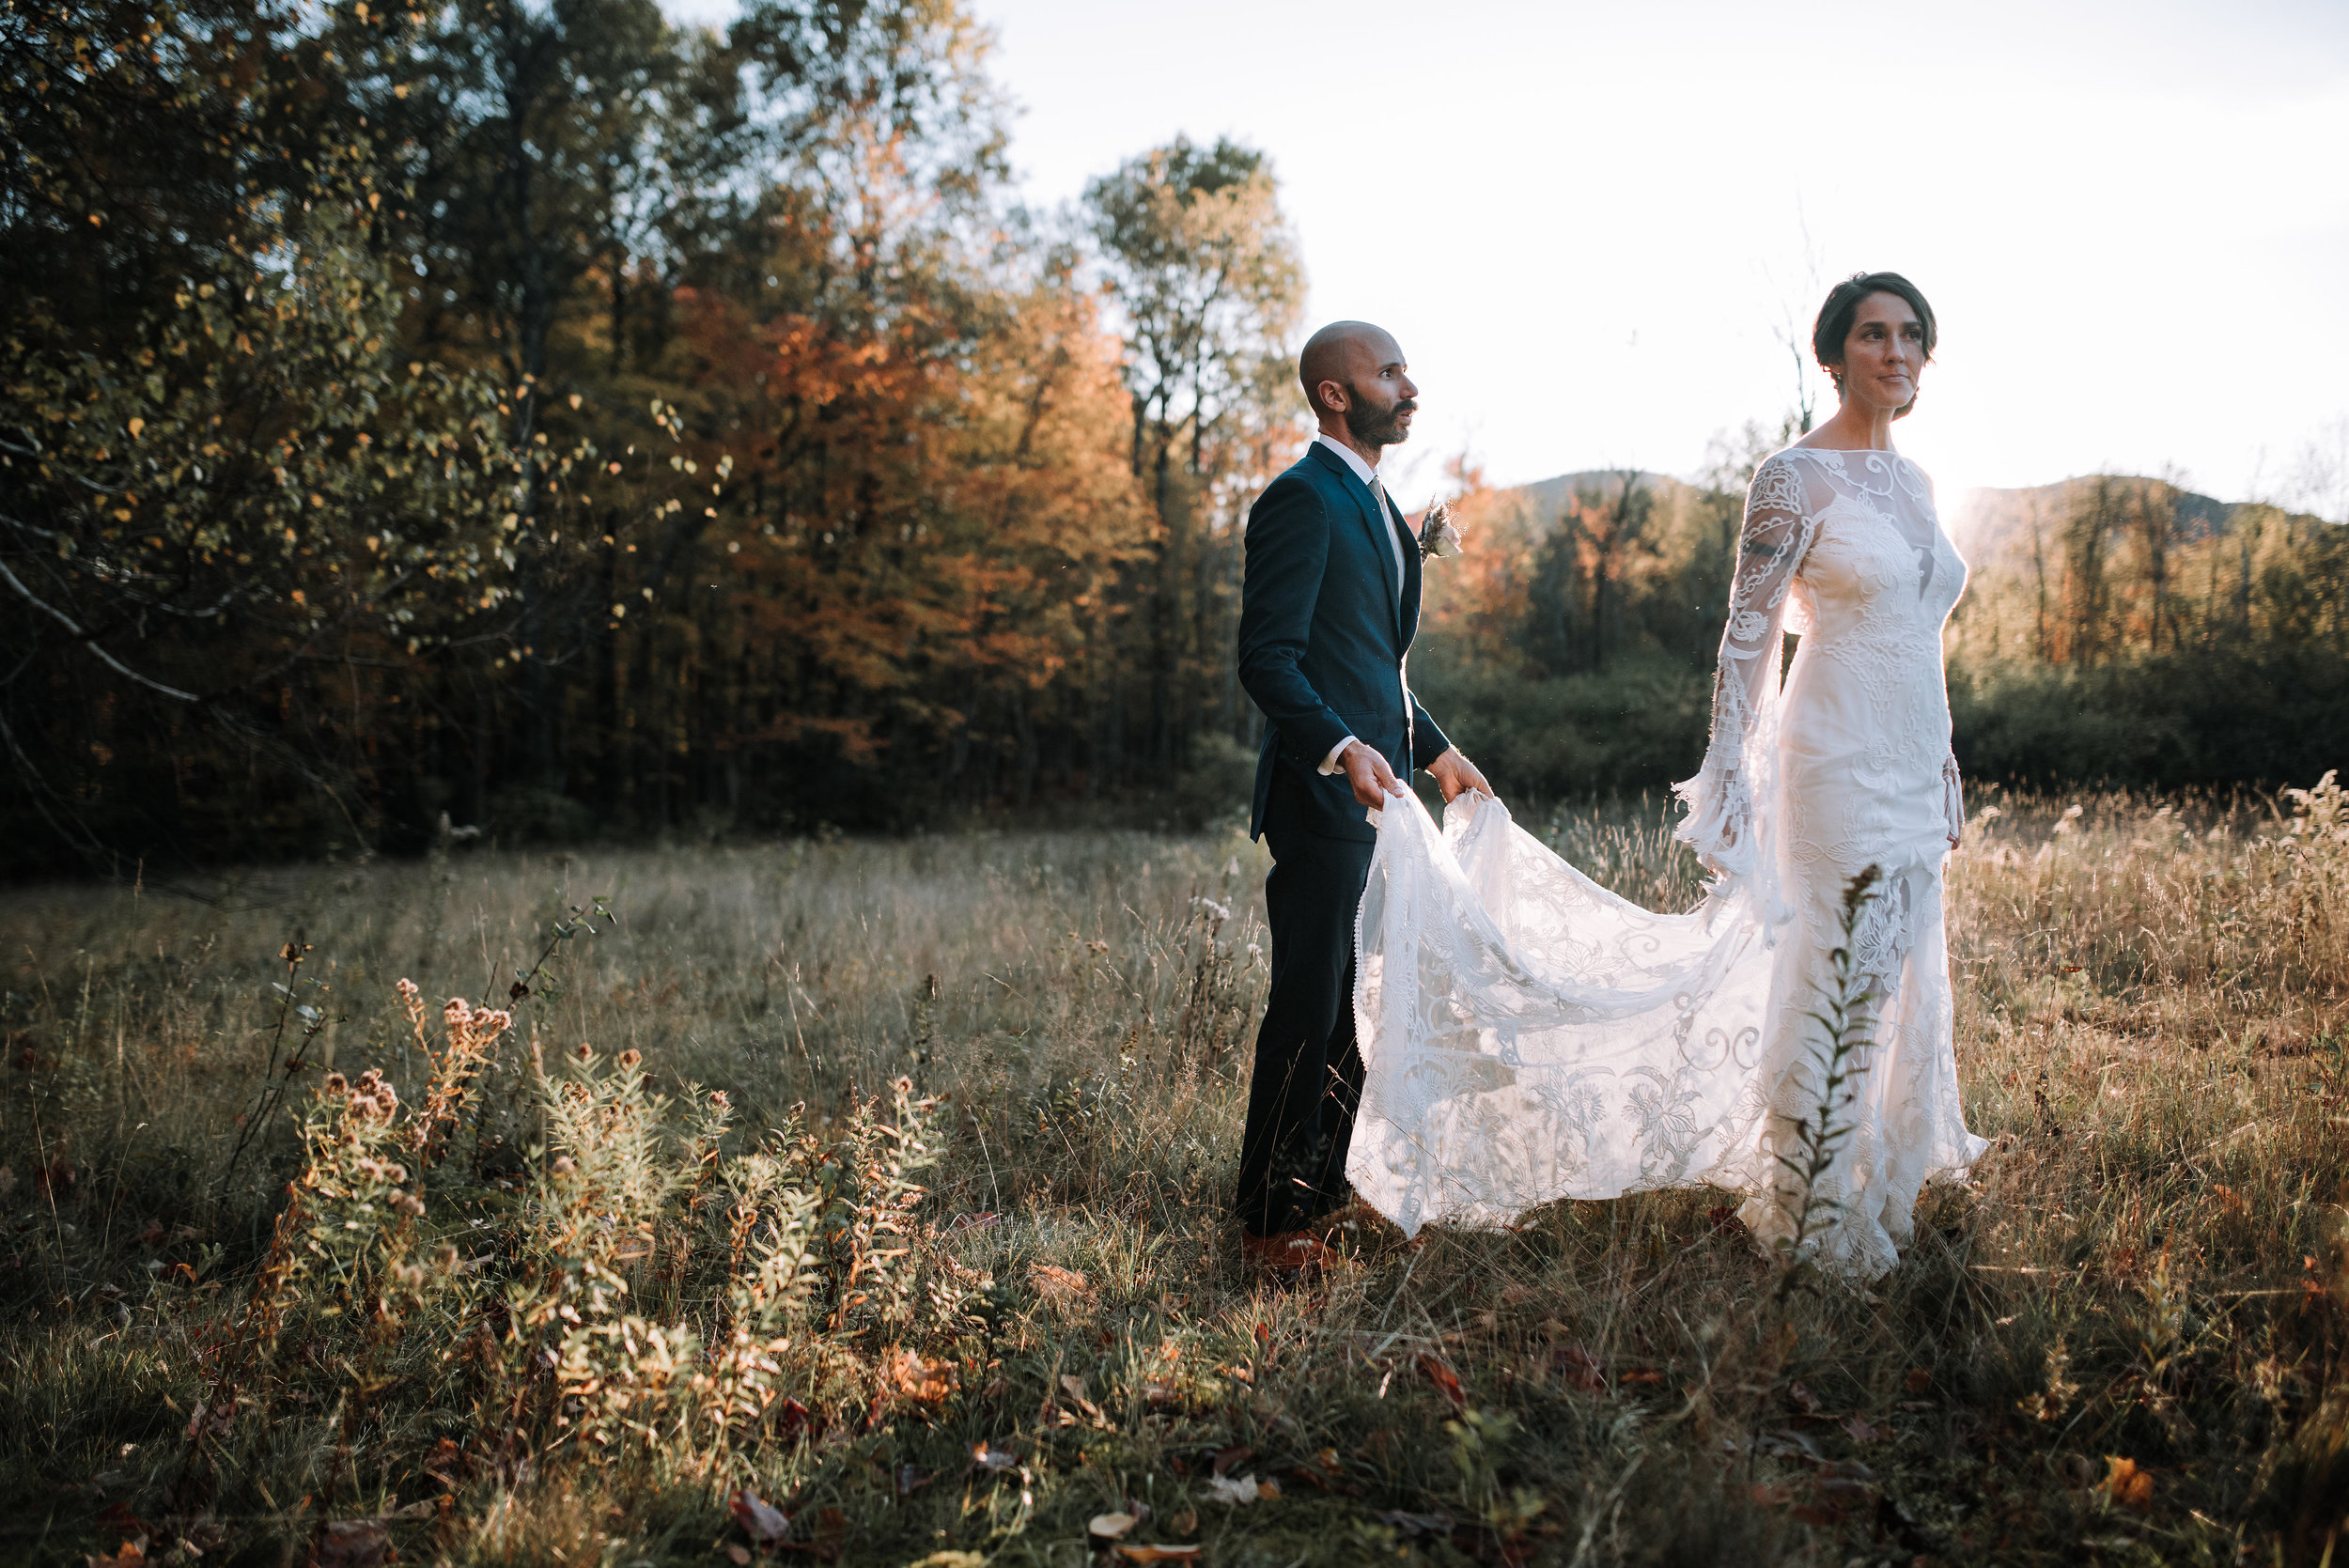 LUVLENS_WEDDING_OCTOBERSTYLEDSHOOT-1.jpg